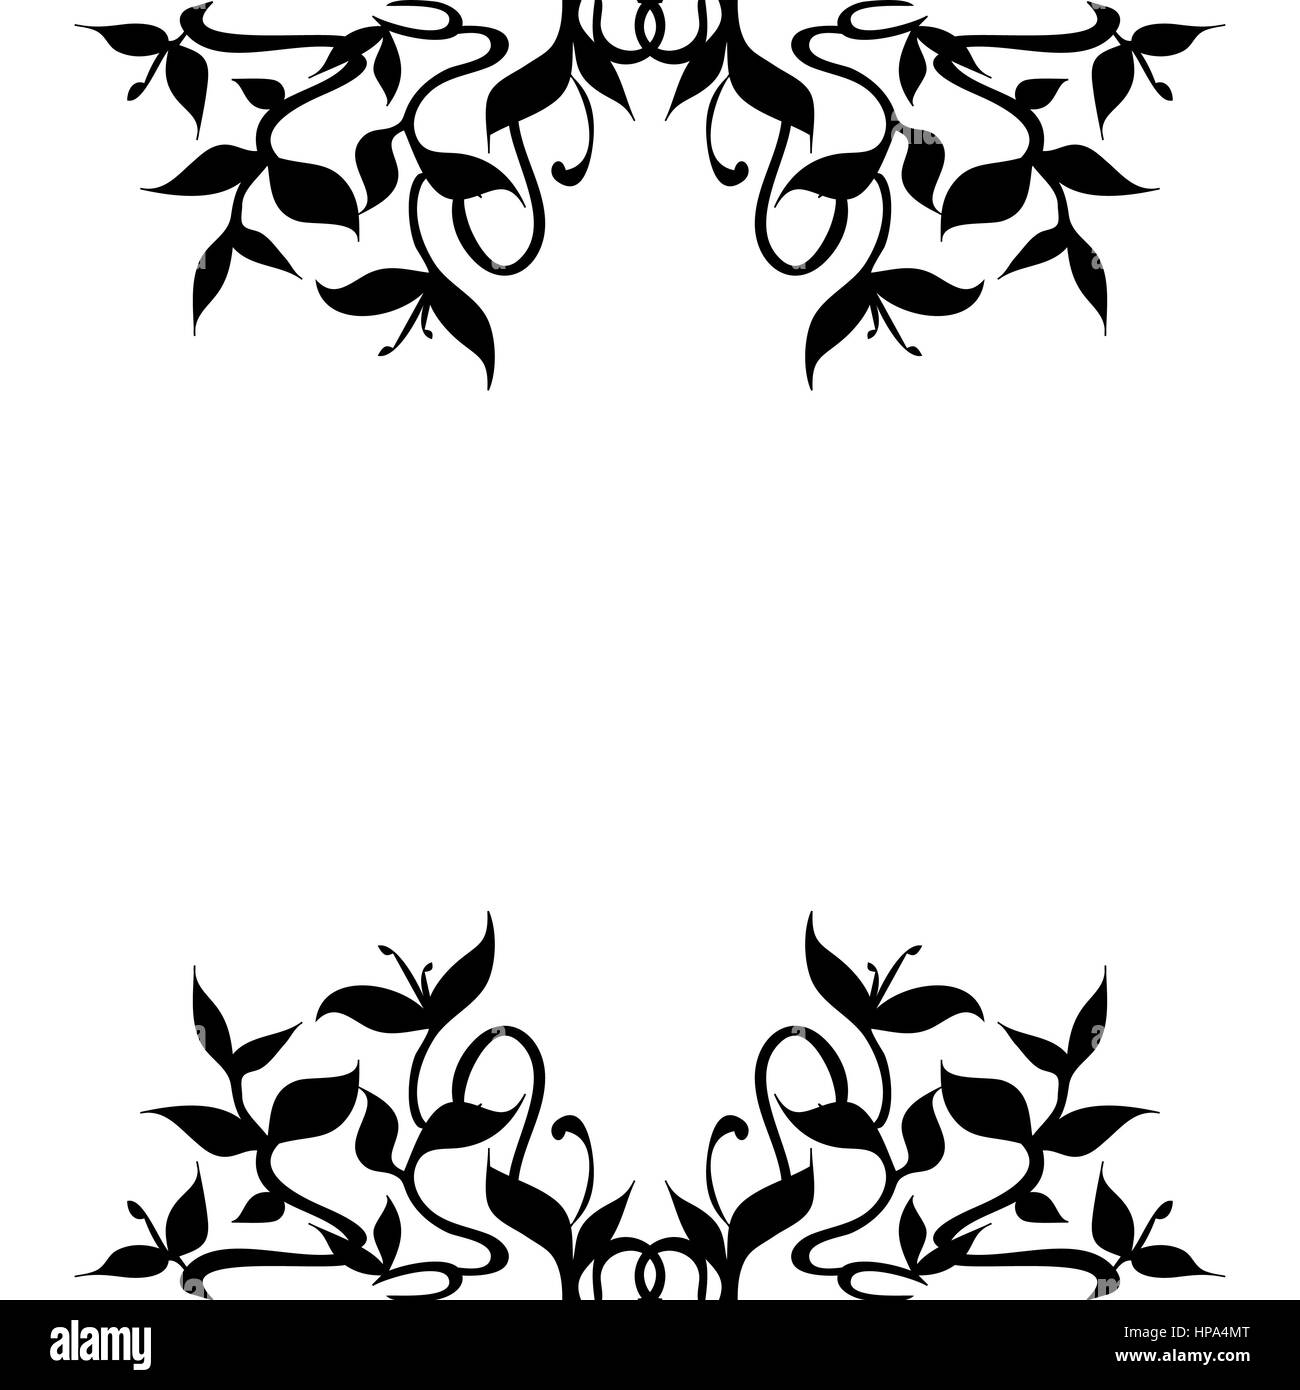 Illustration of stylized plant sprouts to decorate frame borders; flourishing curved leaves and stems pattern. Isolated - Stock Image